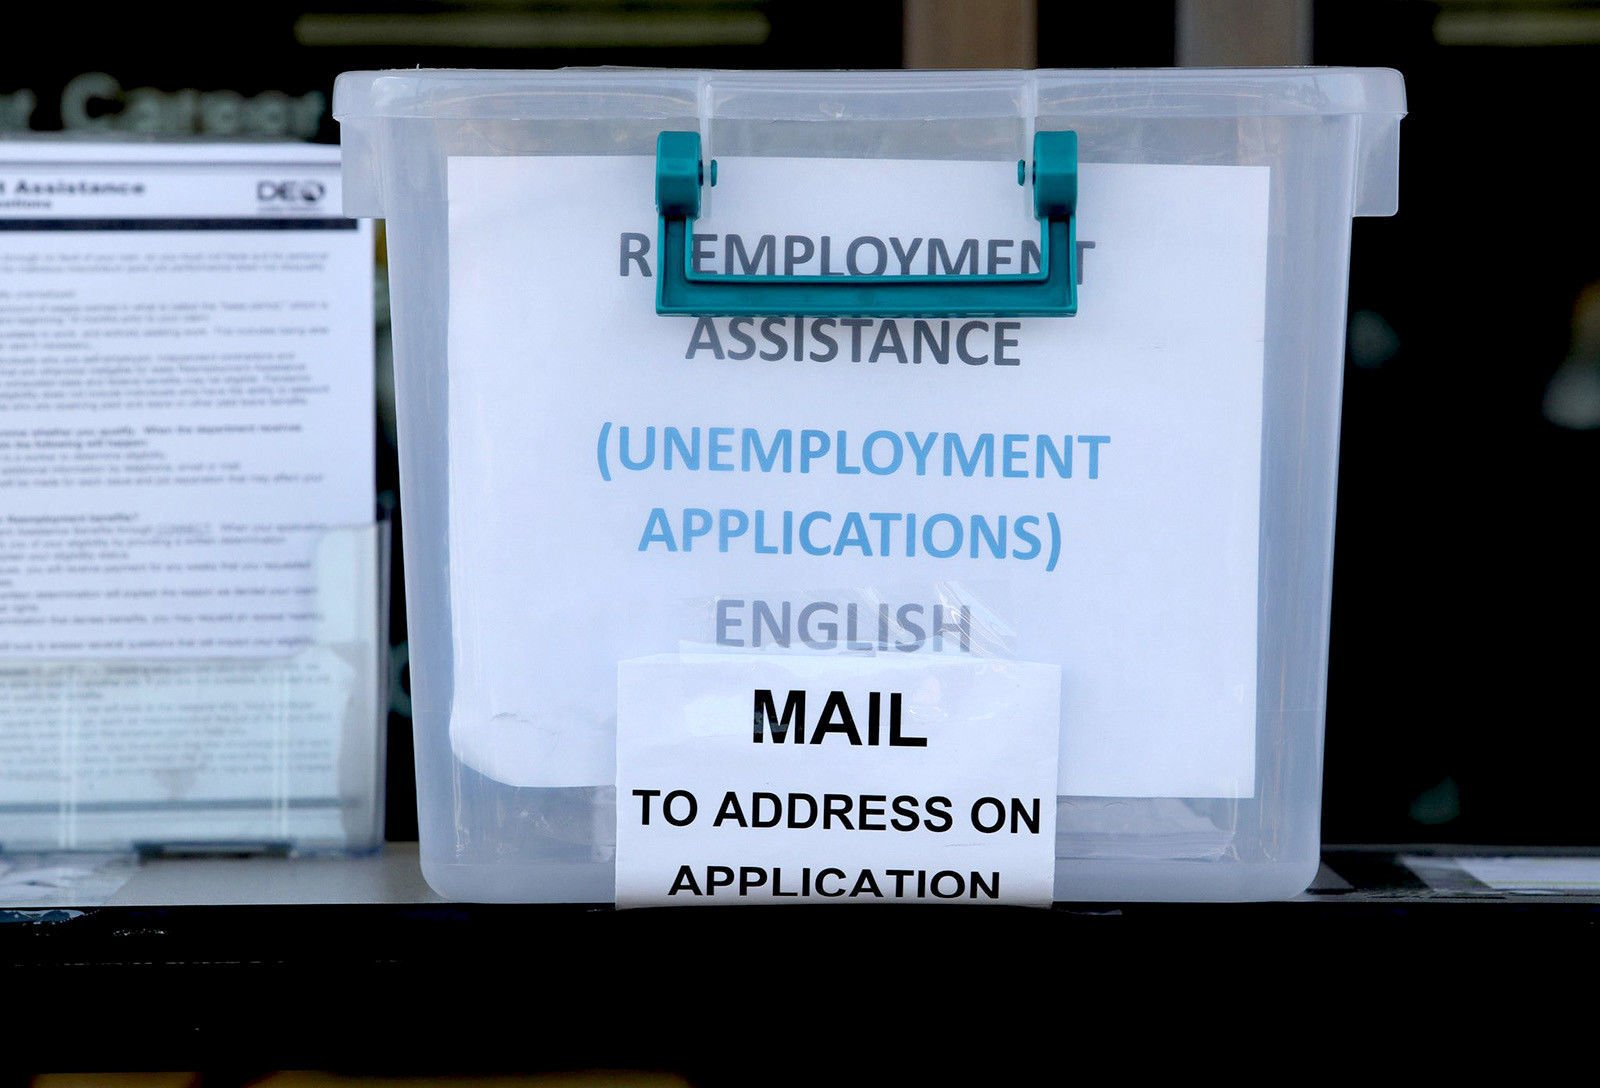 1 in 4 American Workers Have Filed for Unemployment Benefits During the Pandemic 3